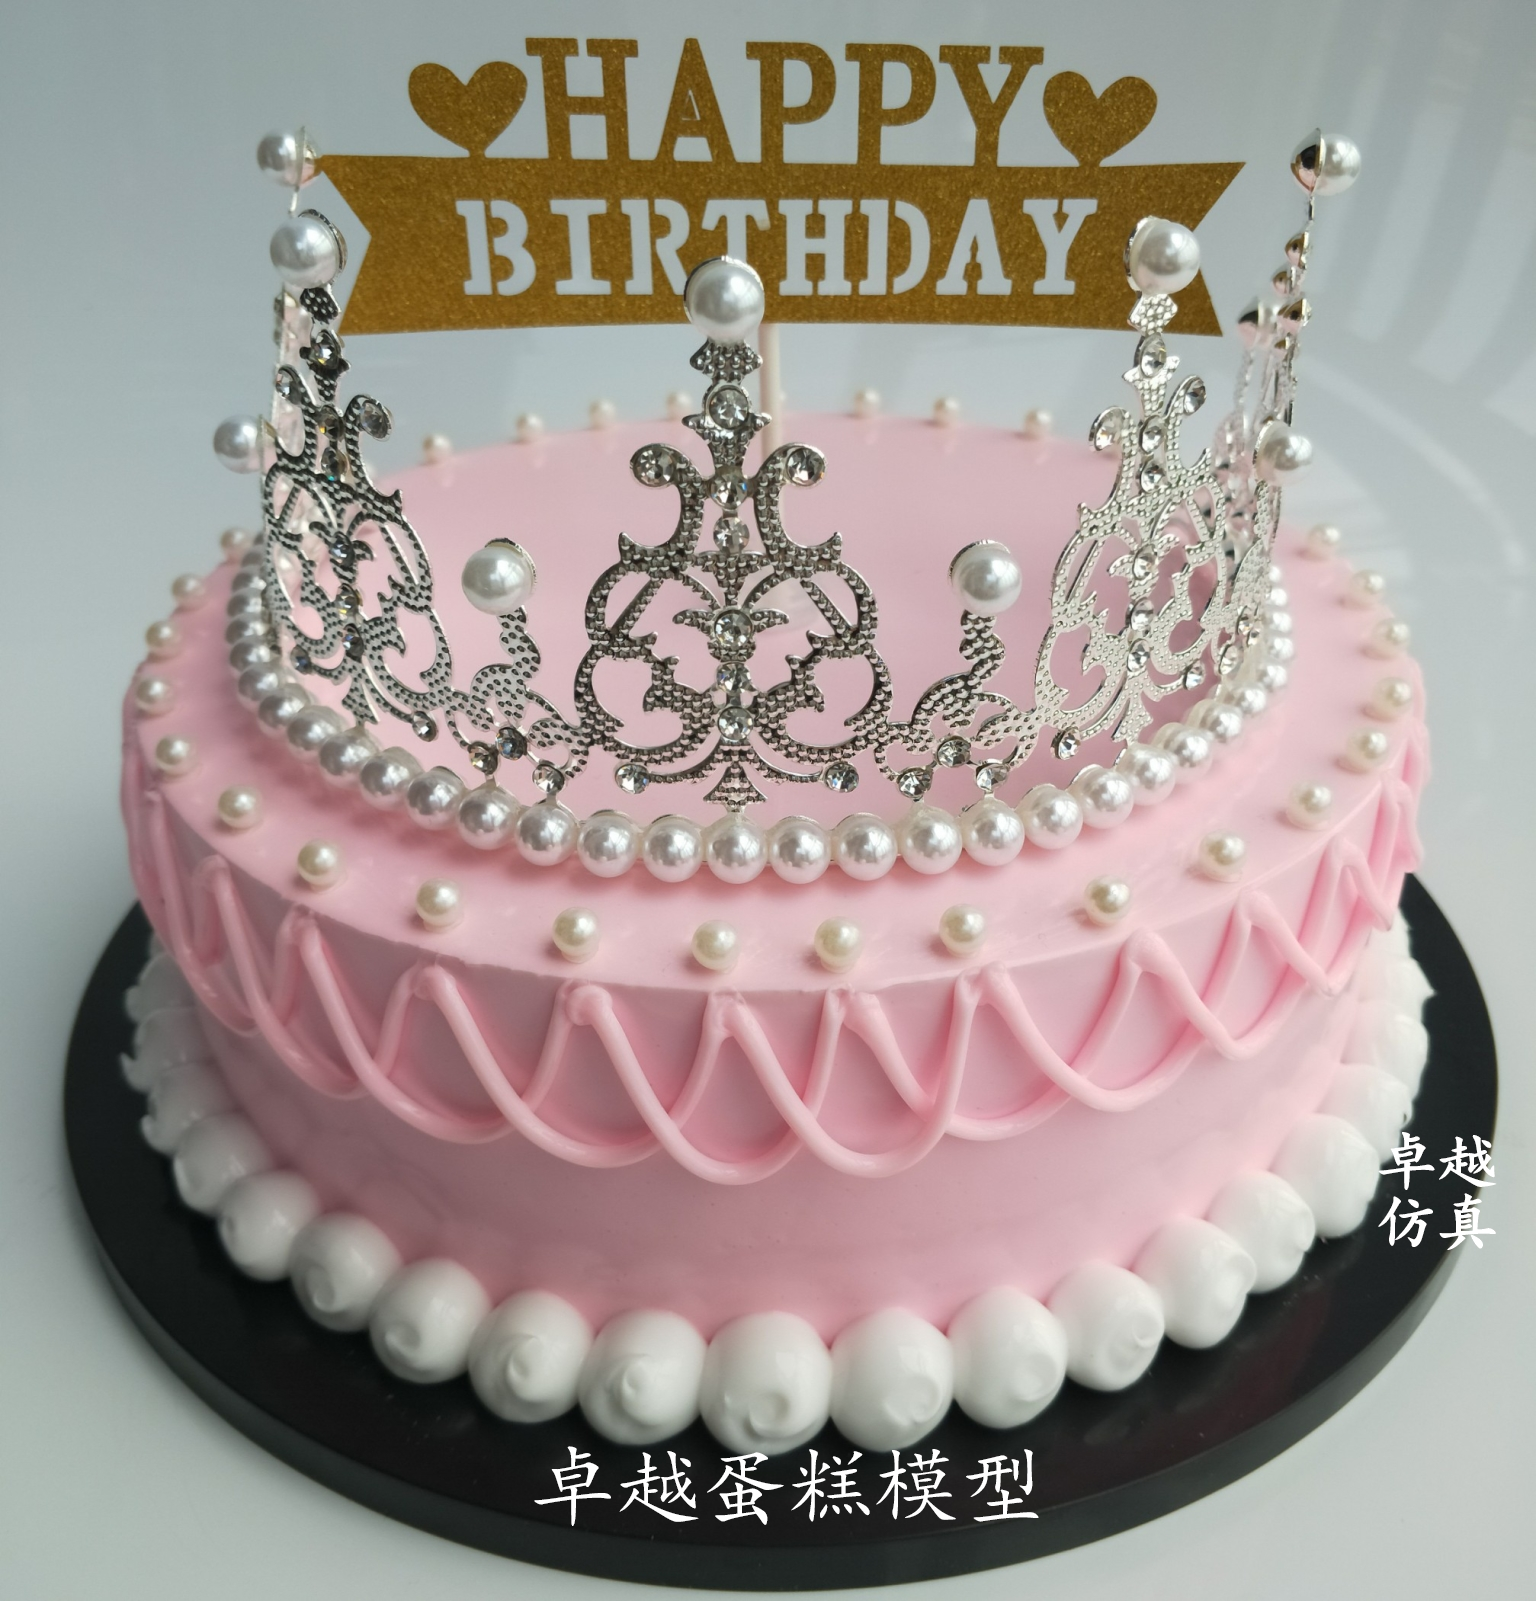 Astonishing Usd 24 64 Simulation Cake Model Crown Queen Birthday Cake Model Funny Birthday Cards Online Alyptdamsfinfo